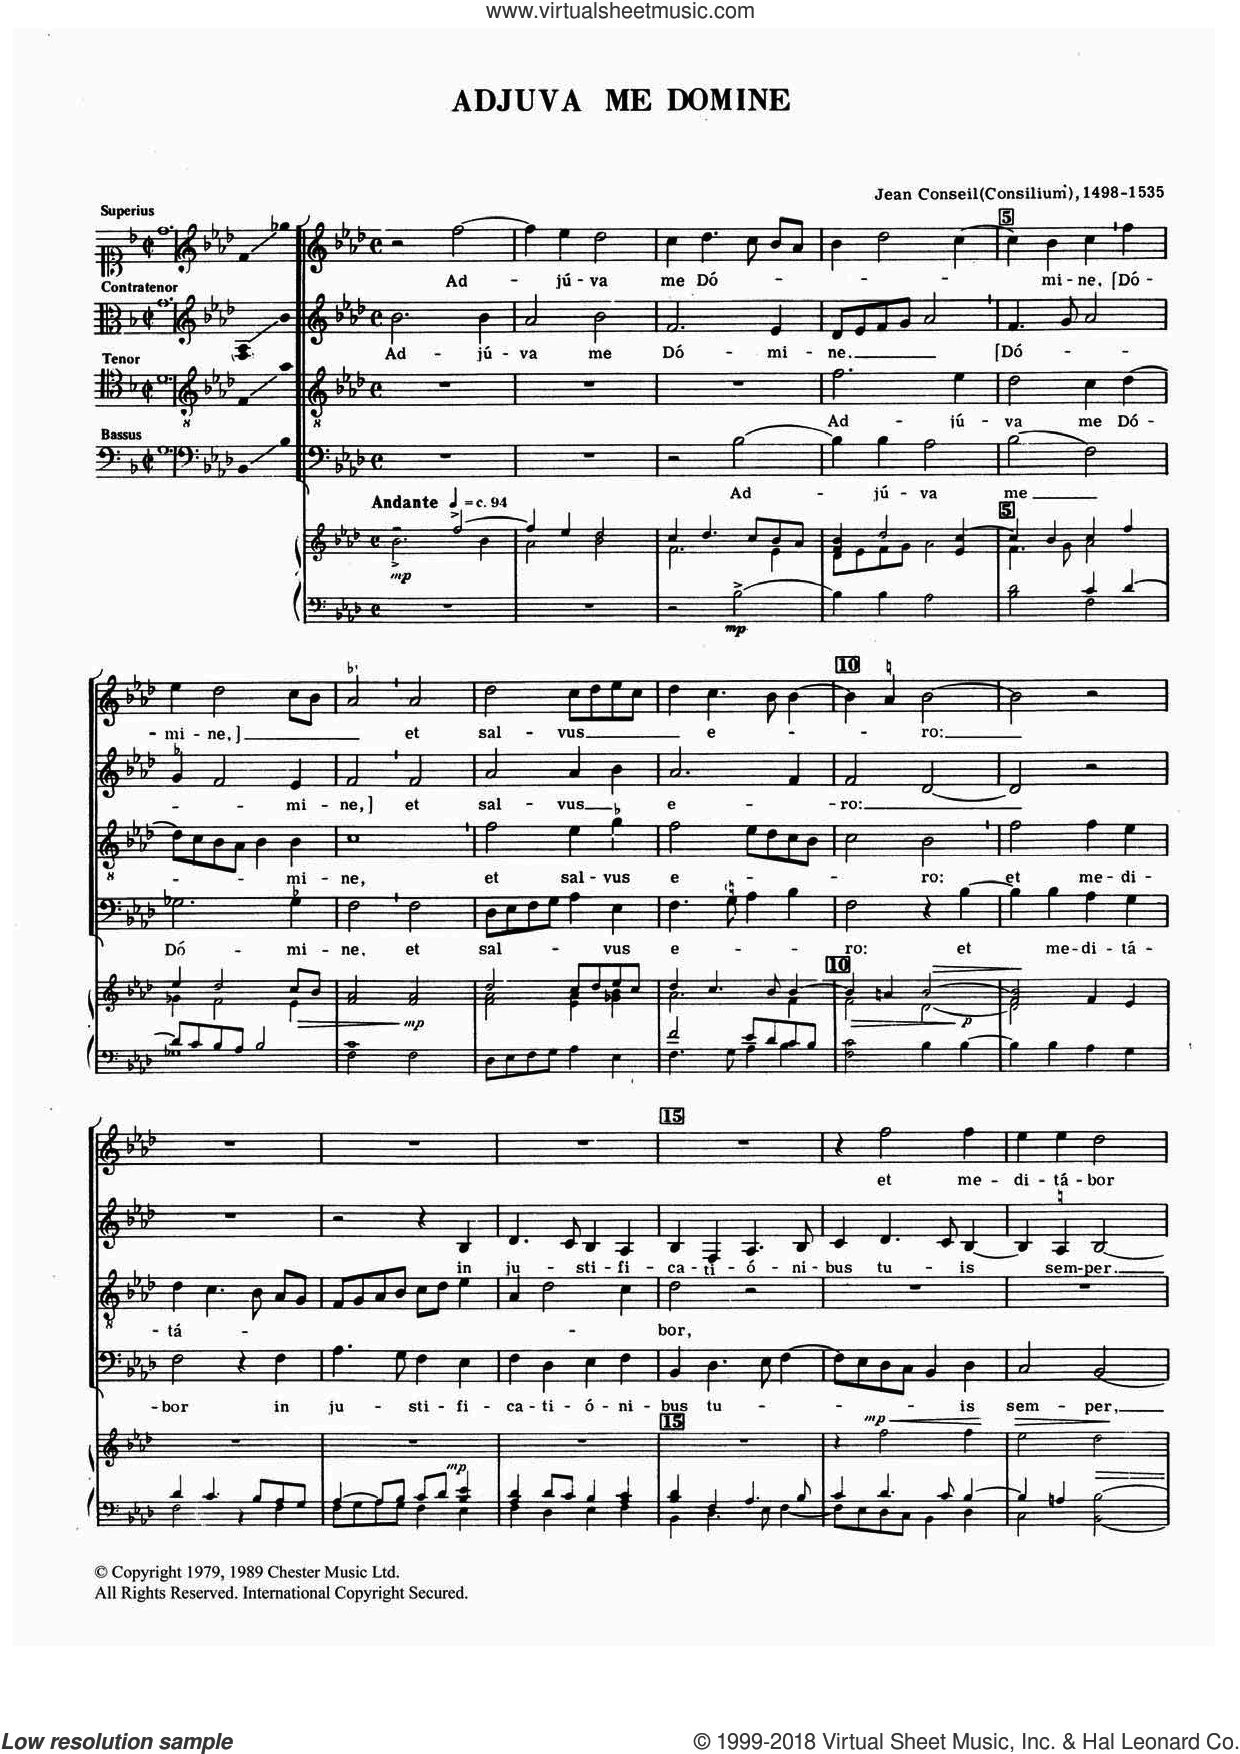 Adjuva Me Domine sheet music for choir by Jean Conseil, classical score, intermediate. Score Image Preview.